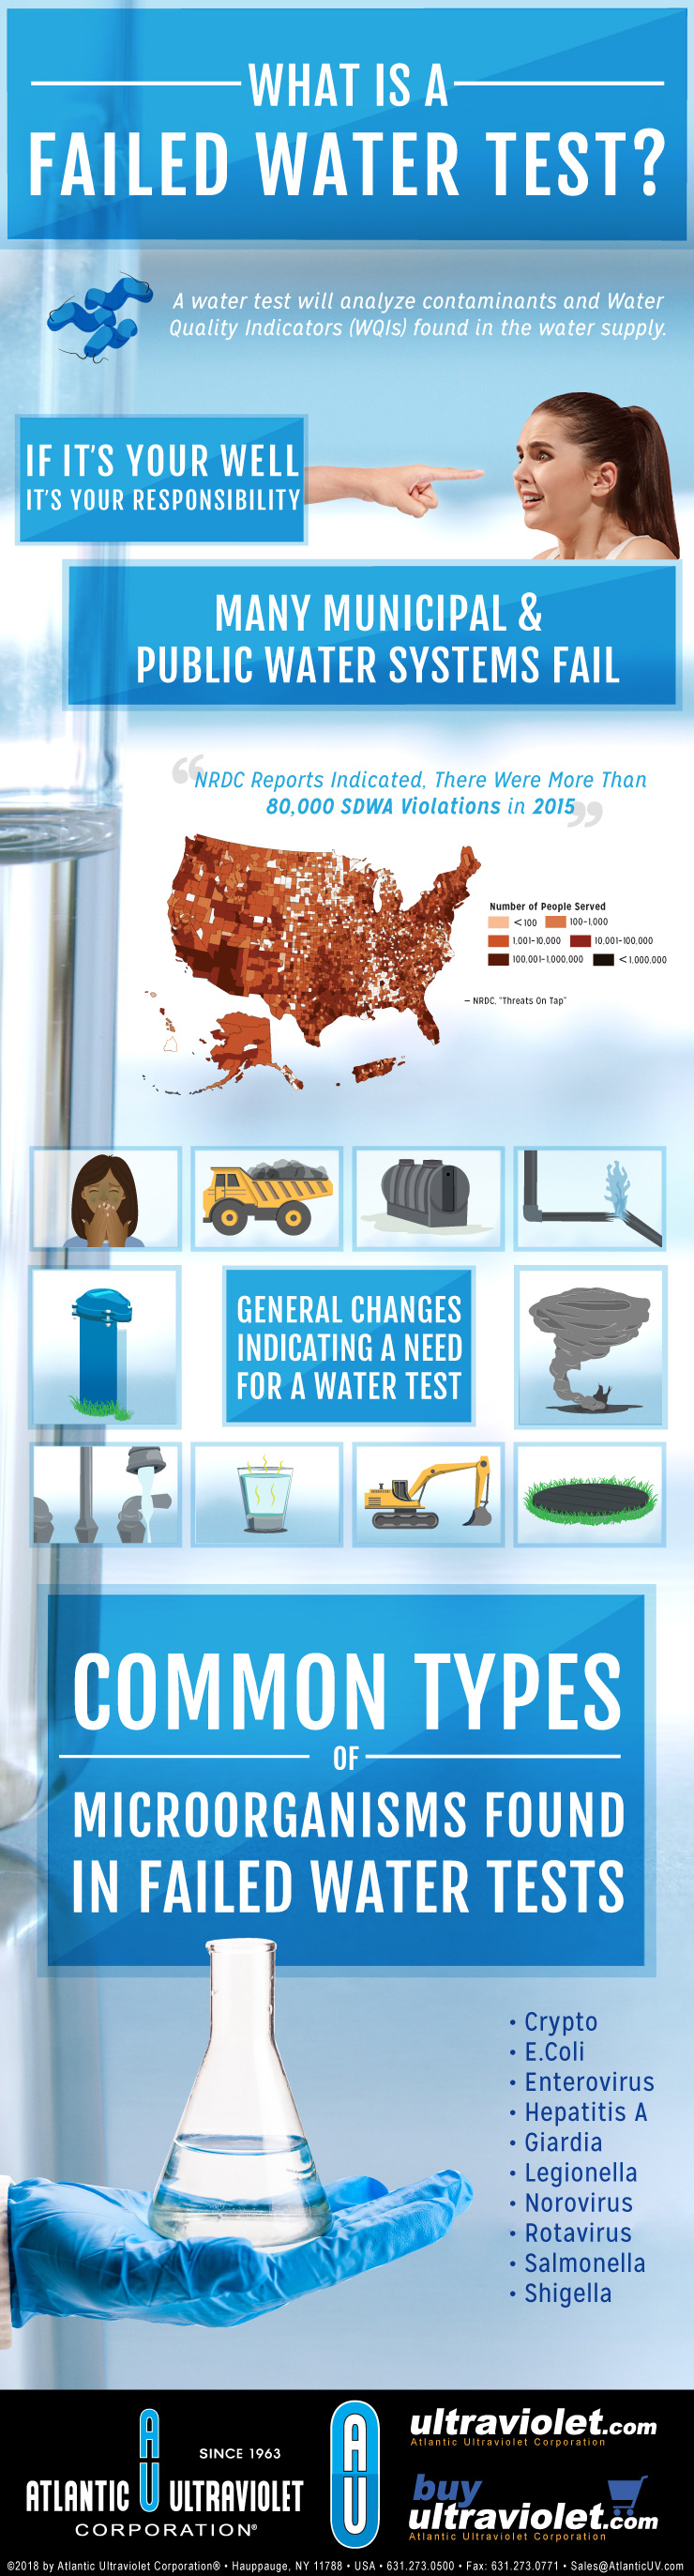 What is a Failed Water Test? Infographic